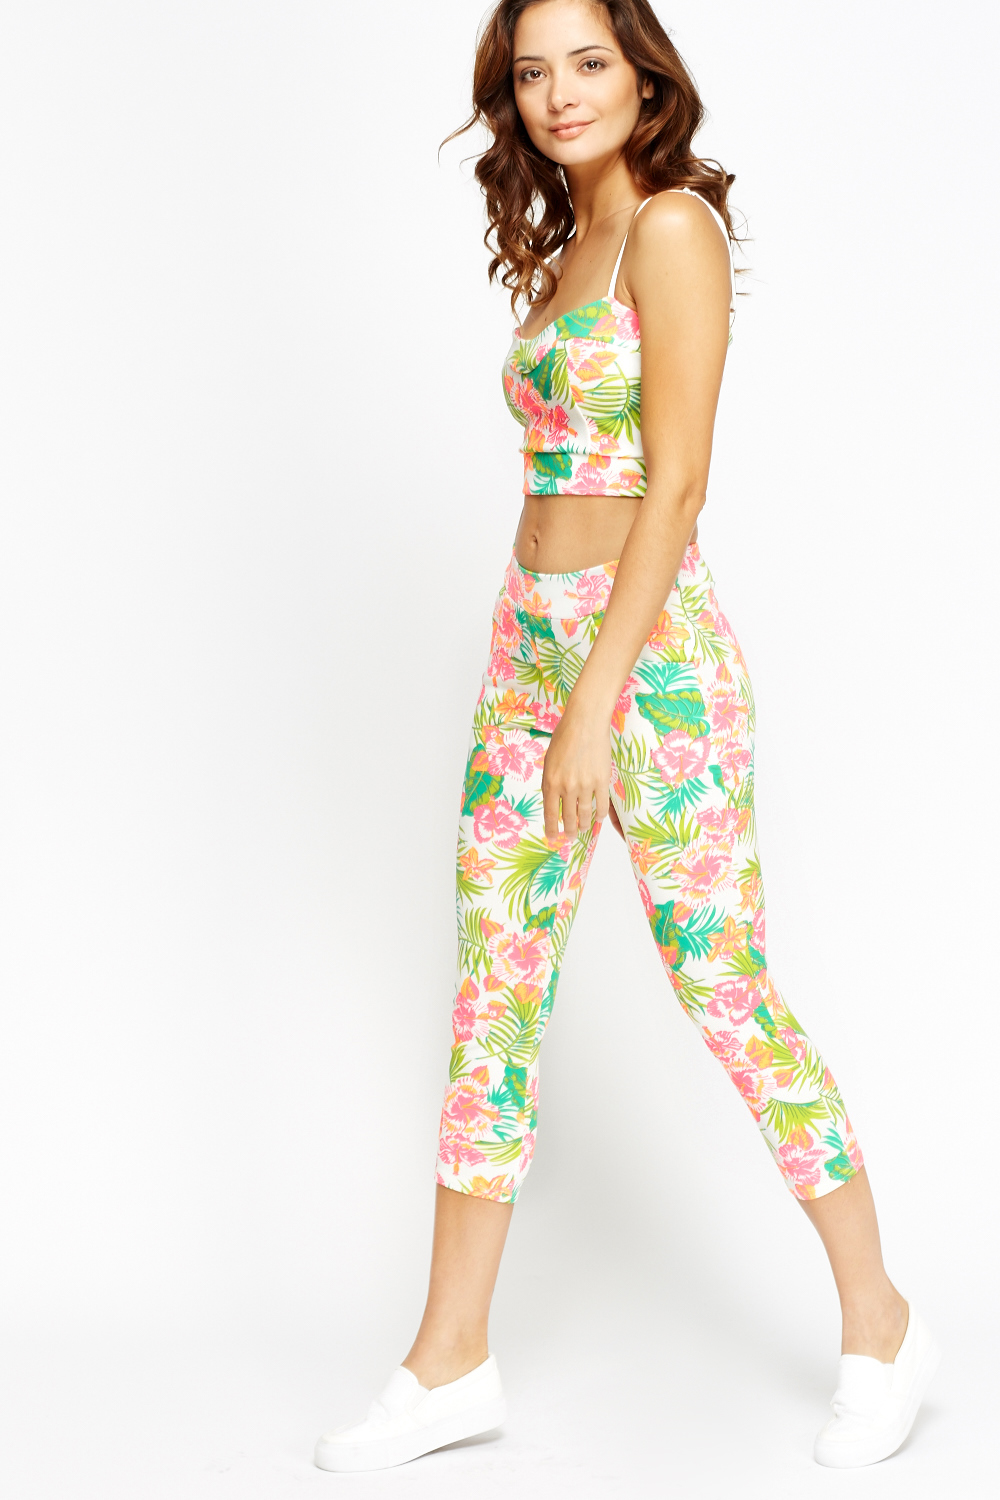 79f7b093cbc0b Floral Print Crop Top And Leggings 2 Piece Set - Just £5